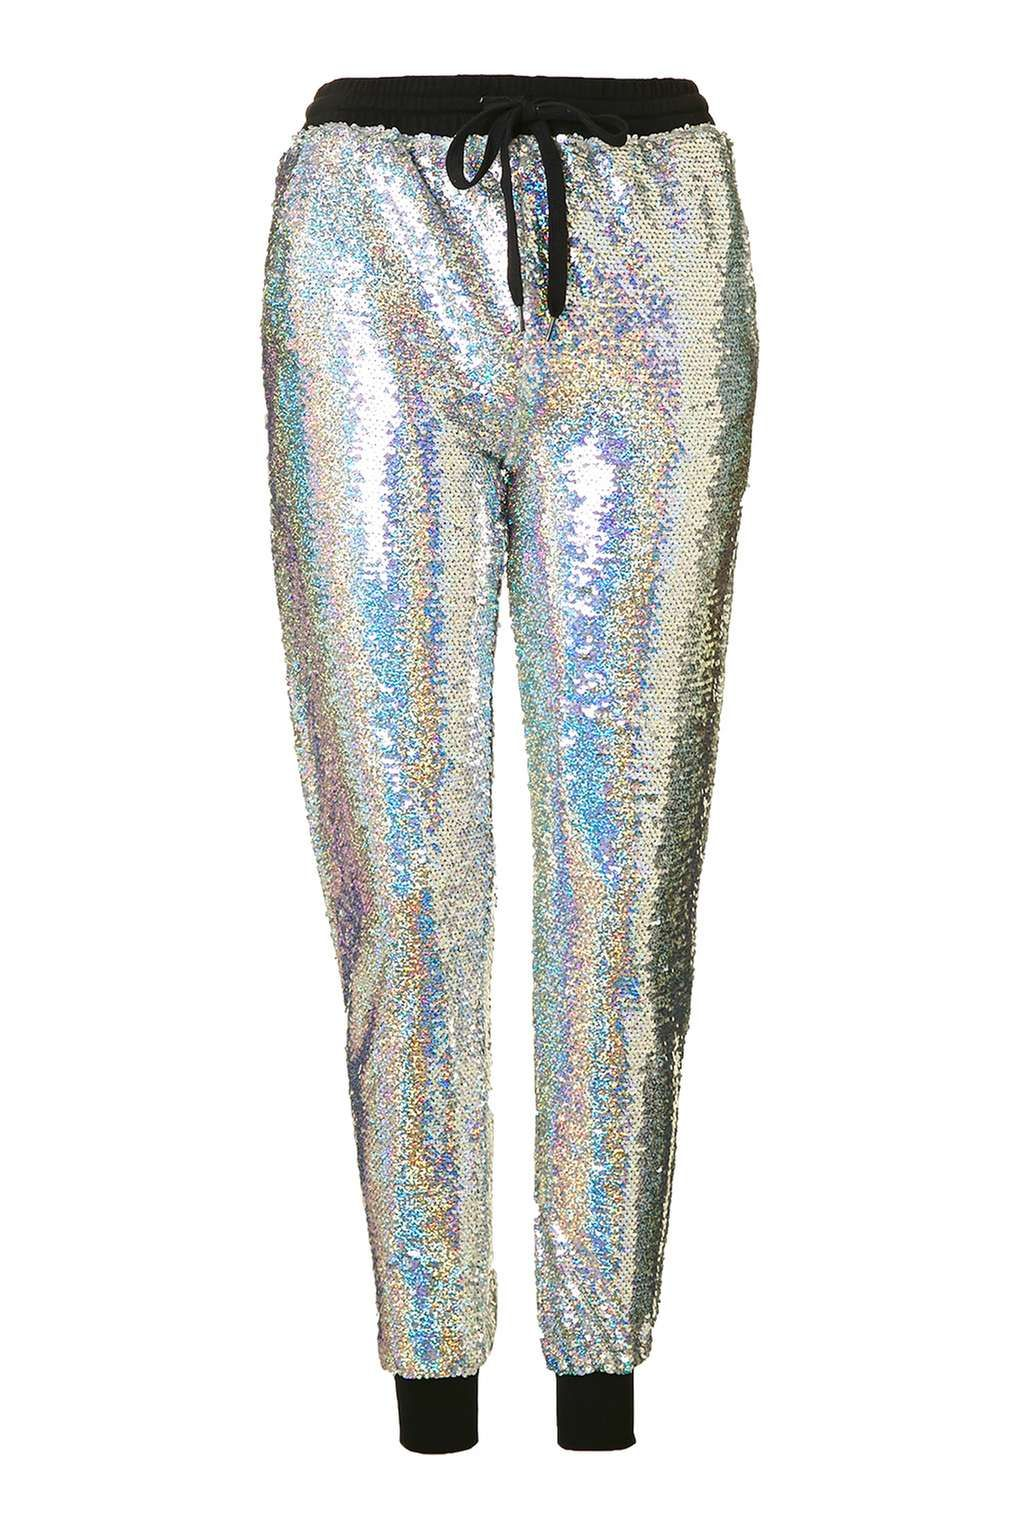 Holographic Joggers by Glamorous Petites - Topshop USA  ced4919d9067